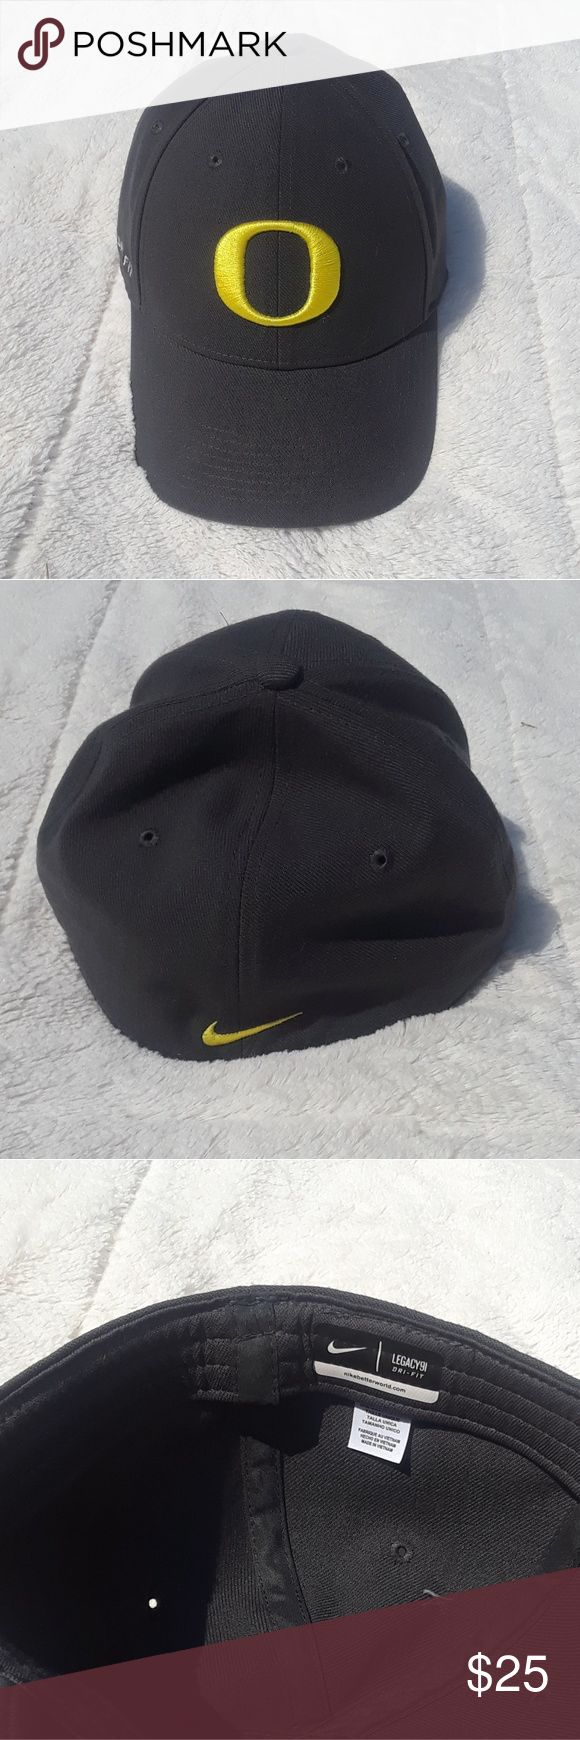 Oregon Ducks Nike Hat NIKE dri fit Oregon Ducks hat One size fits most In like new condition Nike Accessories Hats